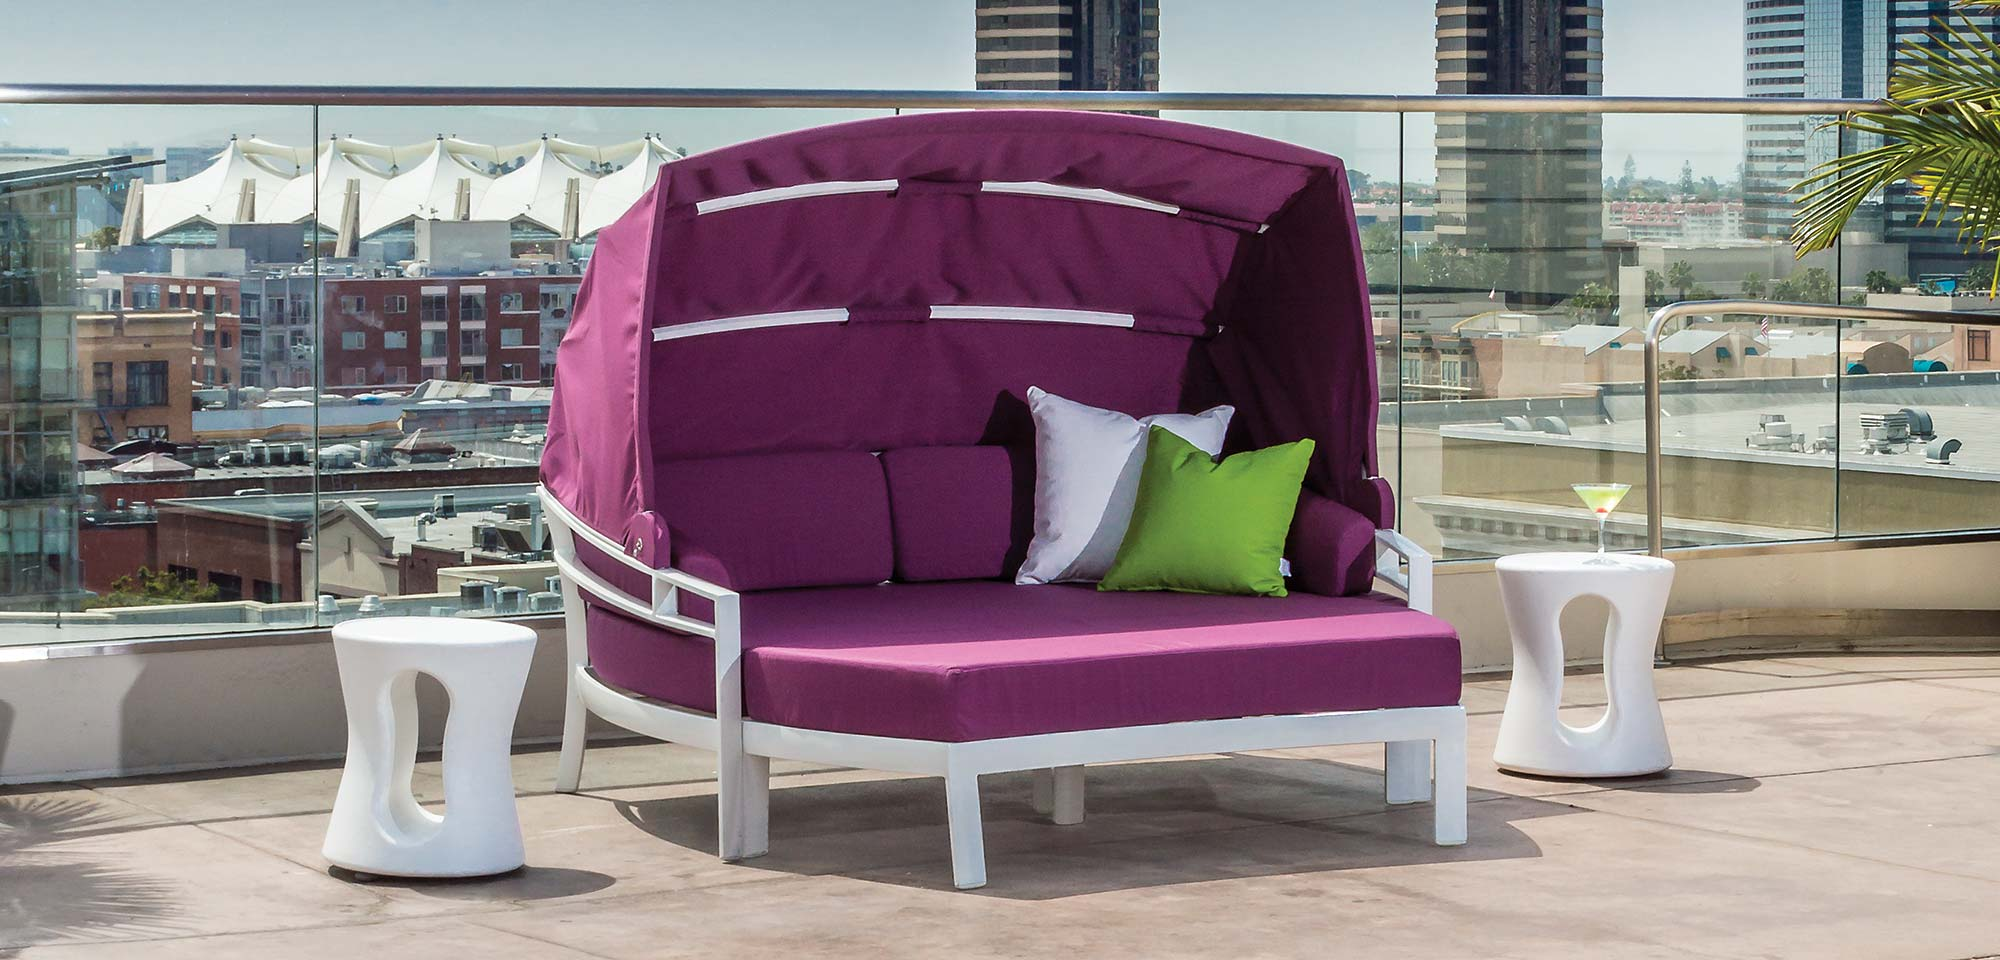 Perfect Commercial Outdoor Furniture | Patio Furniture | Outdoor Furniture Sets